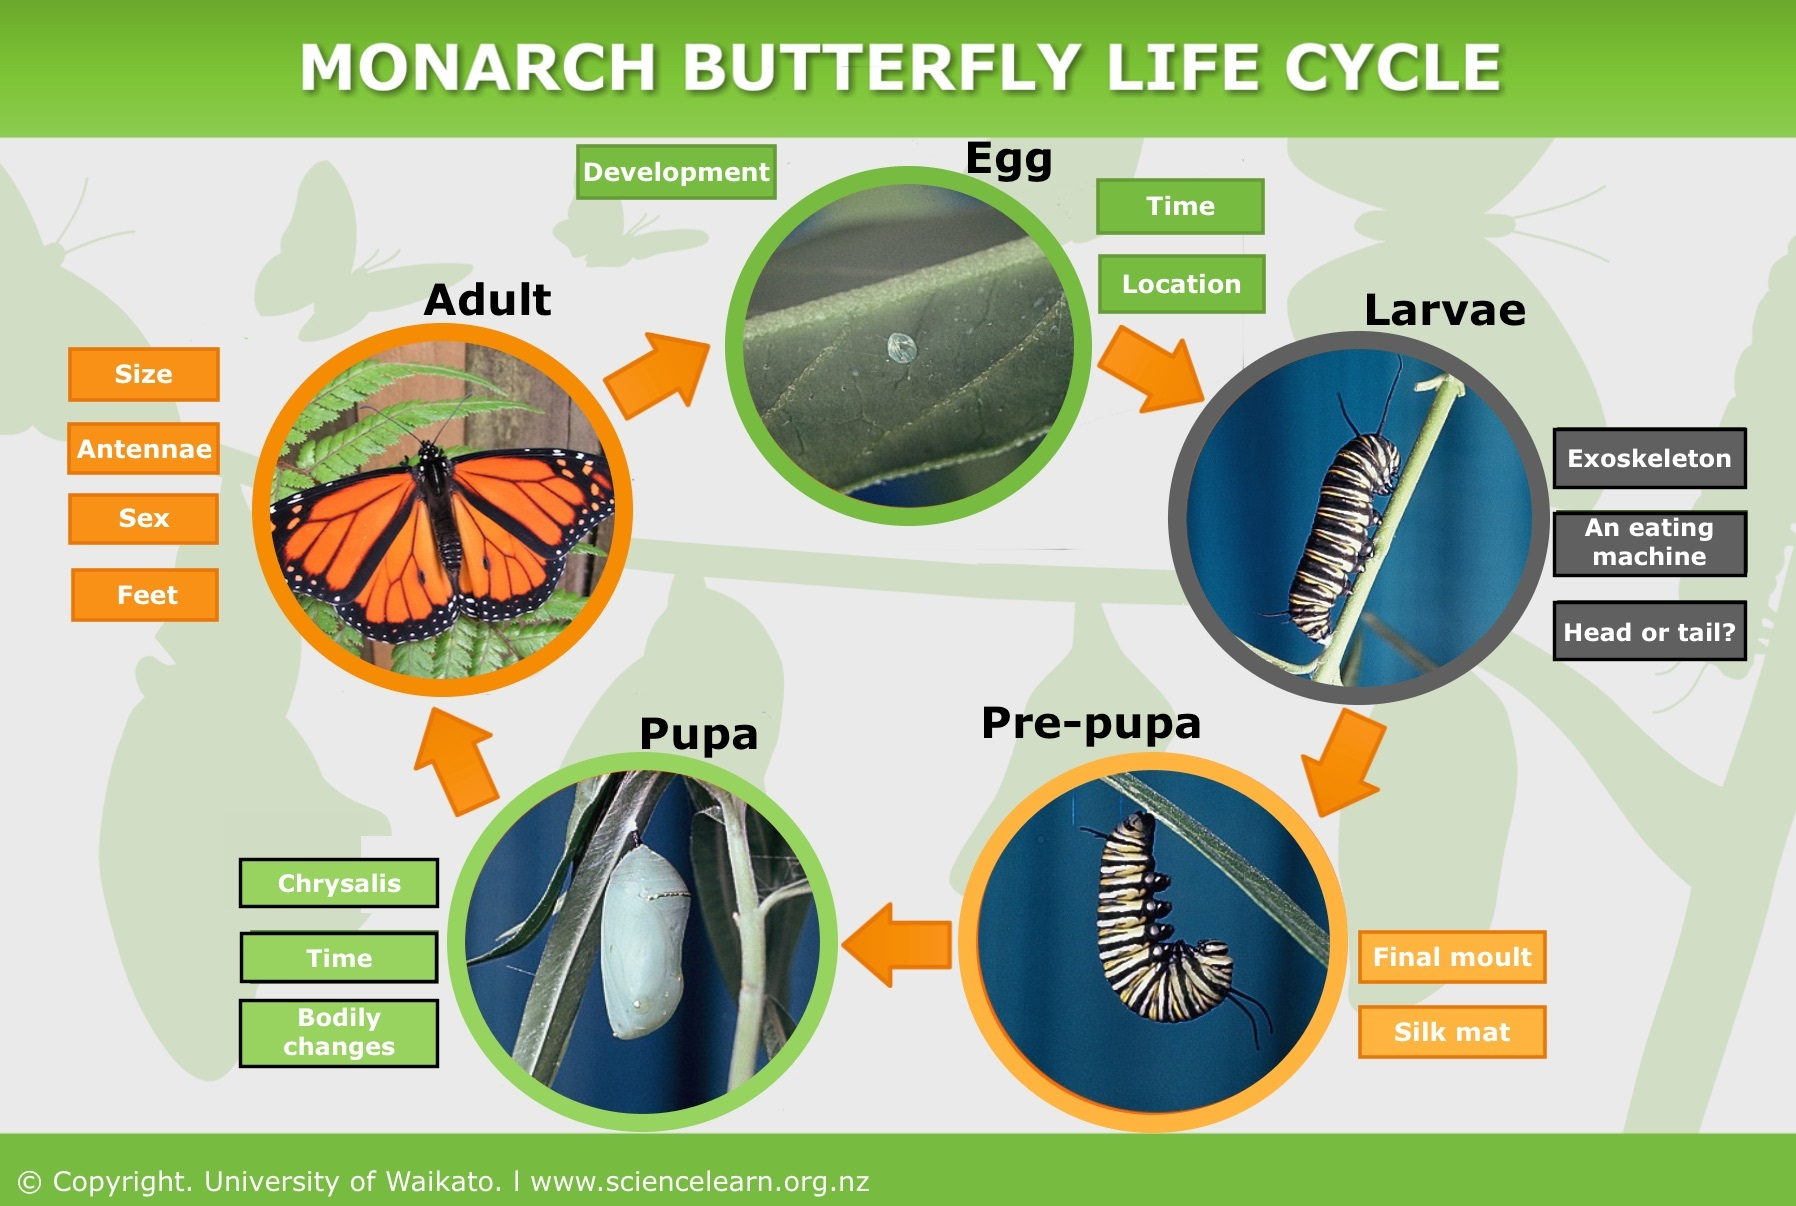 Monarch butterfly life cycle science learning hub click on the stages tabs to learn more about the different stages of the life cycle of the monarch butterfly pooptronica Choice Image